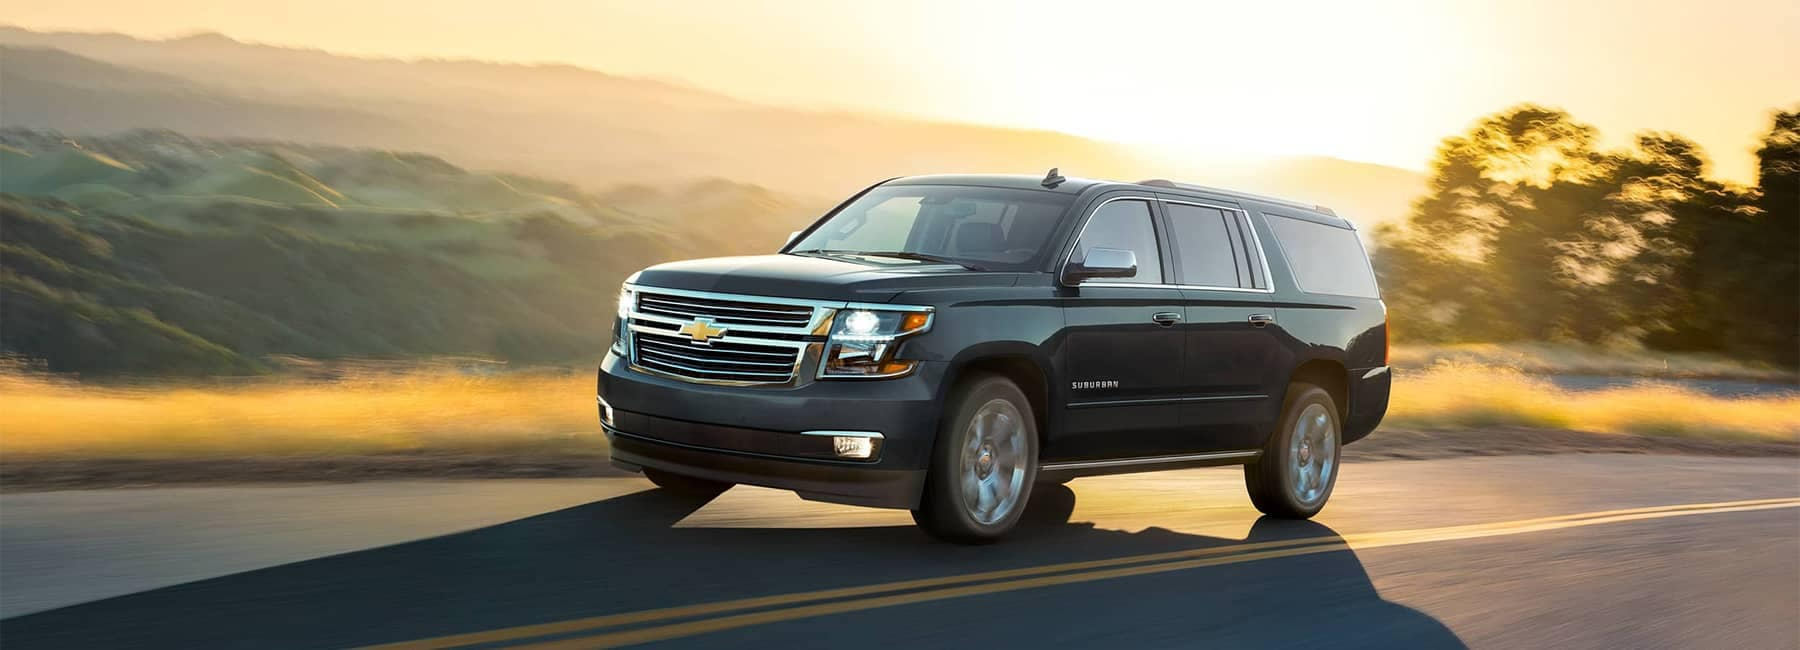 2019 Suburban Driving Down the Road